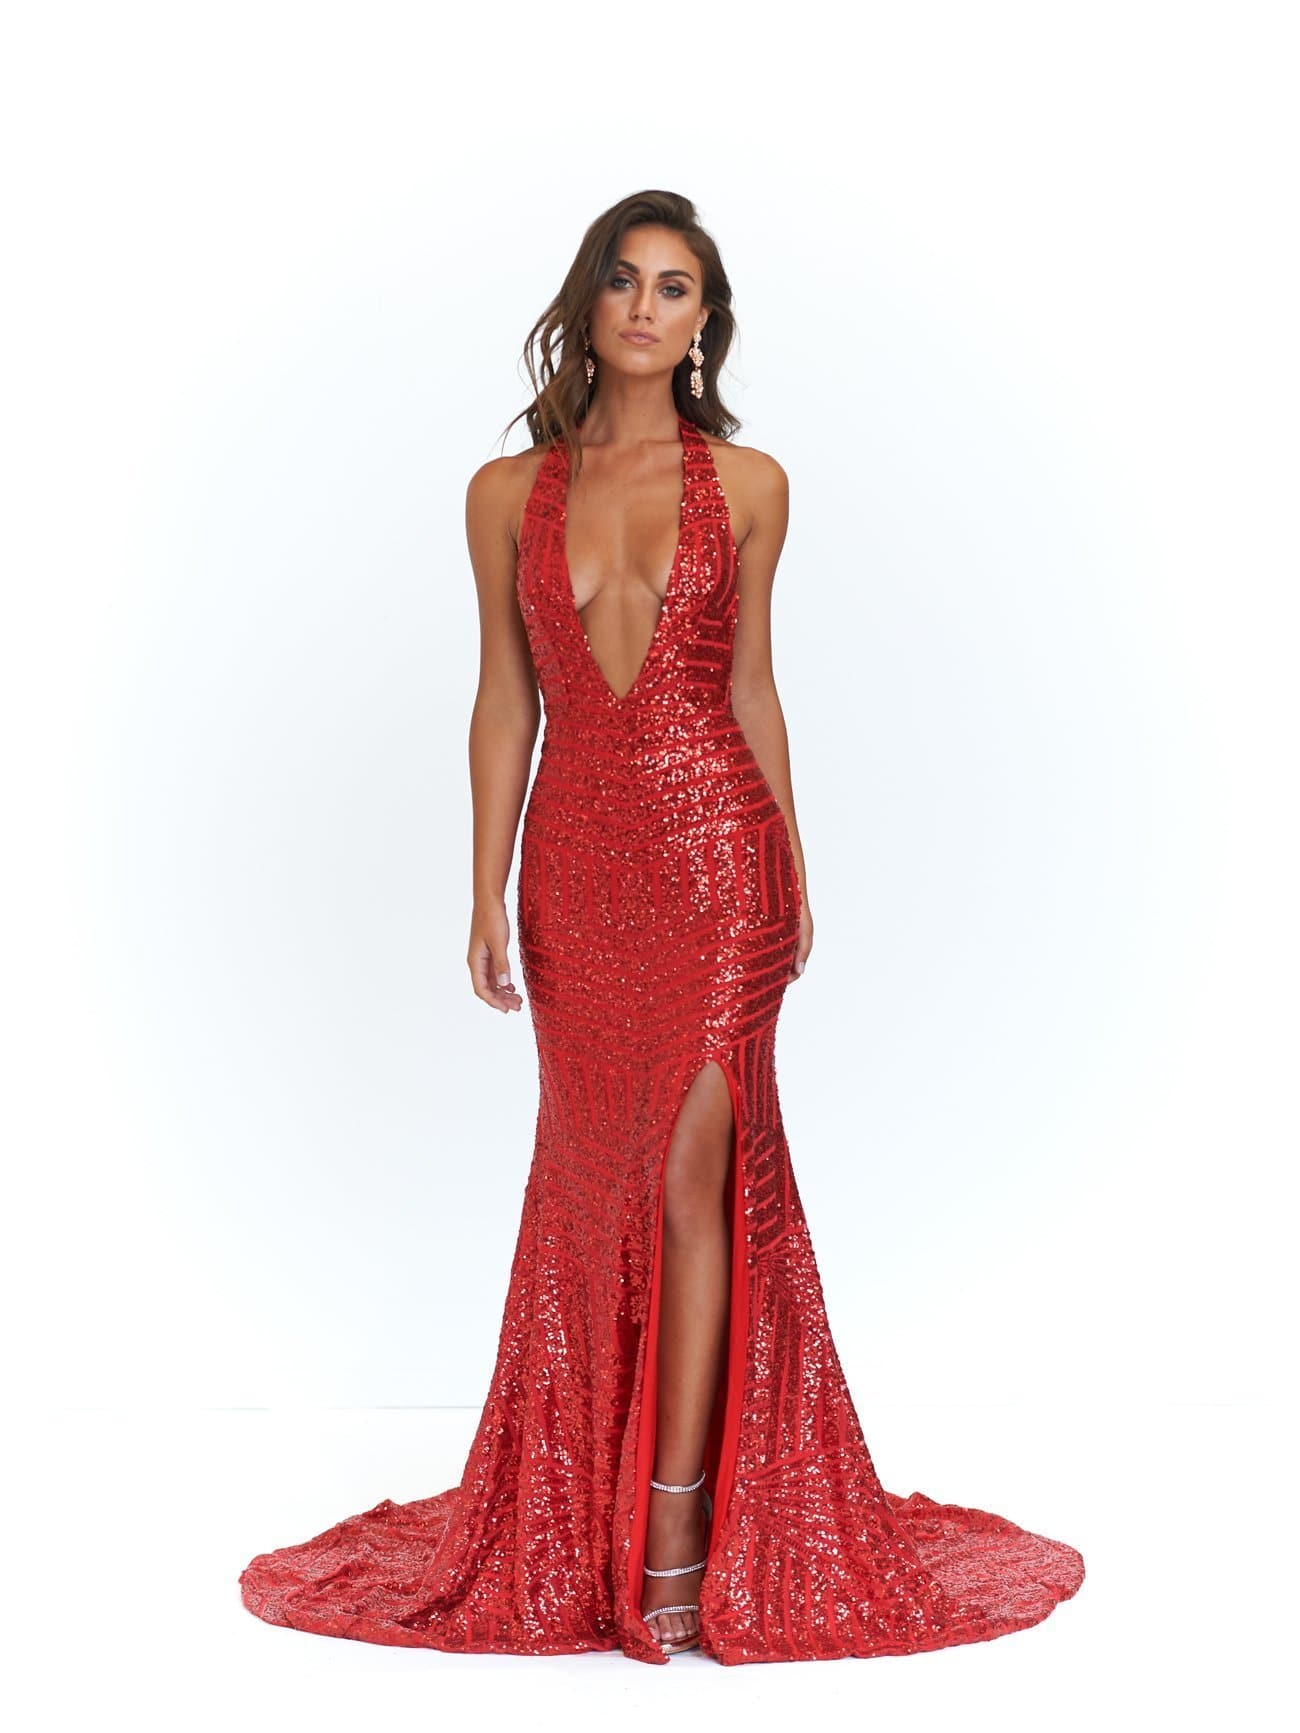 57458fb676 A N Cleopatra - Red Sequins Dress with V Neck and Low Back – A N ...